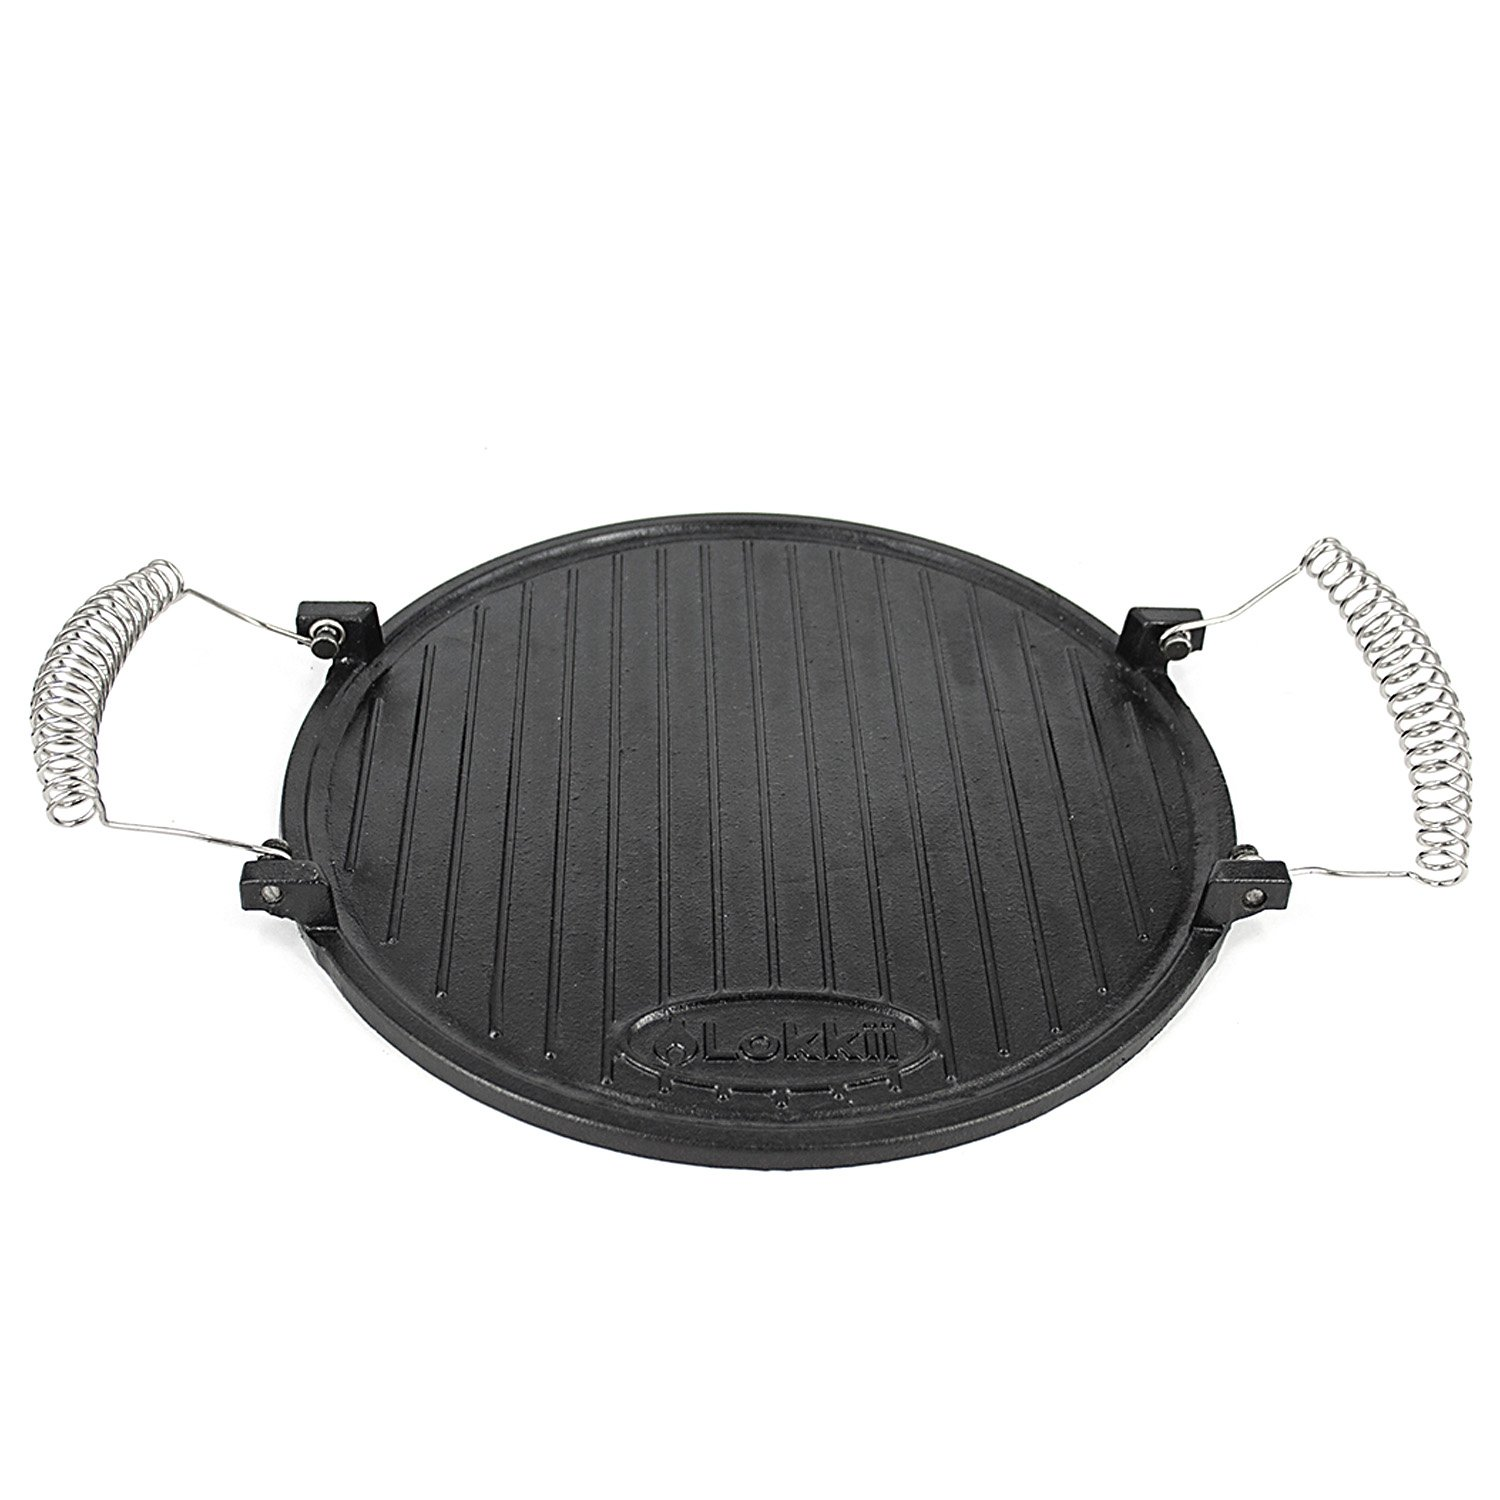 Lokkii CIC2 Cast Iron Hot Plate for All Perfection Kettle BBQ's - Black Great Harbour Holdings Ltd